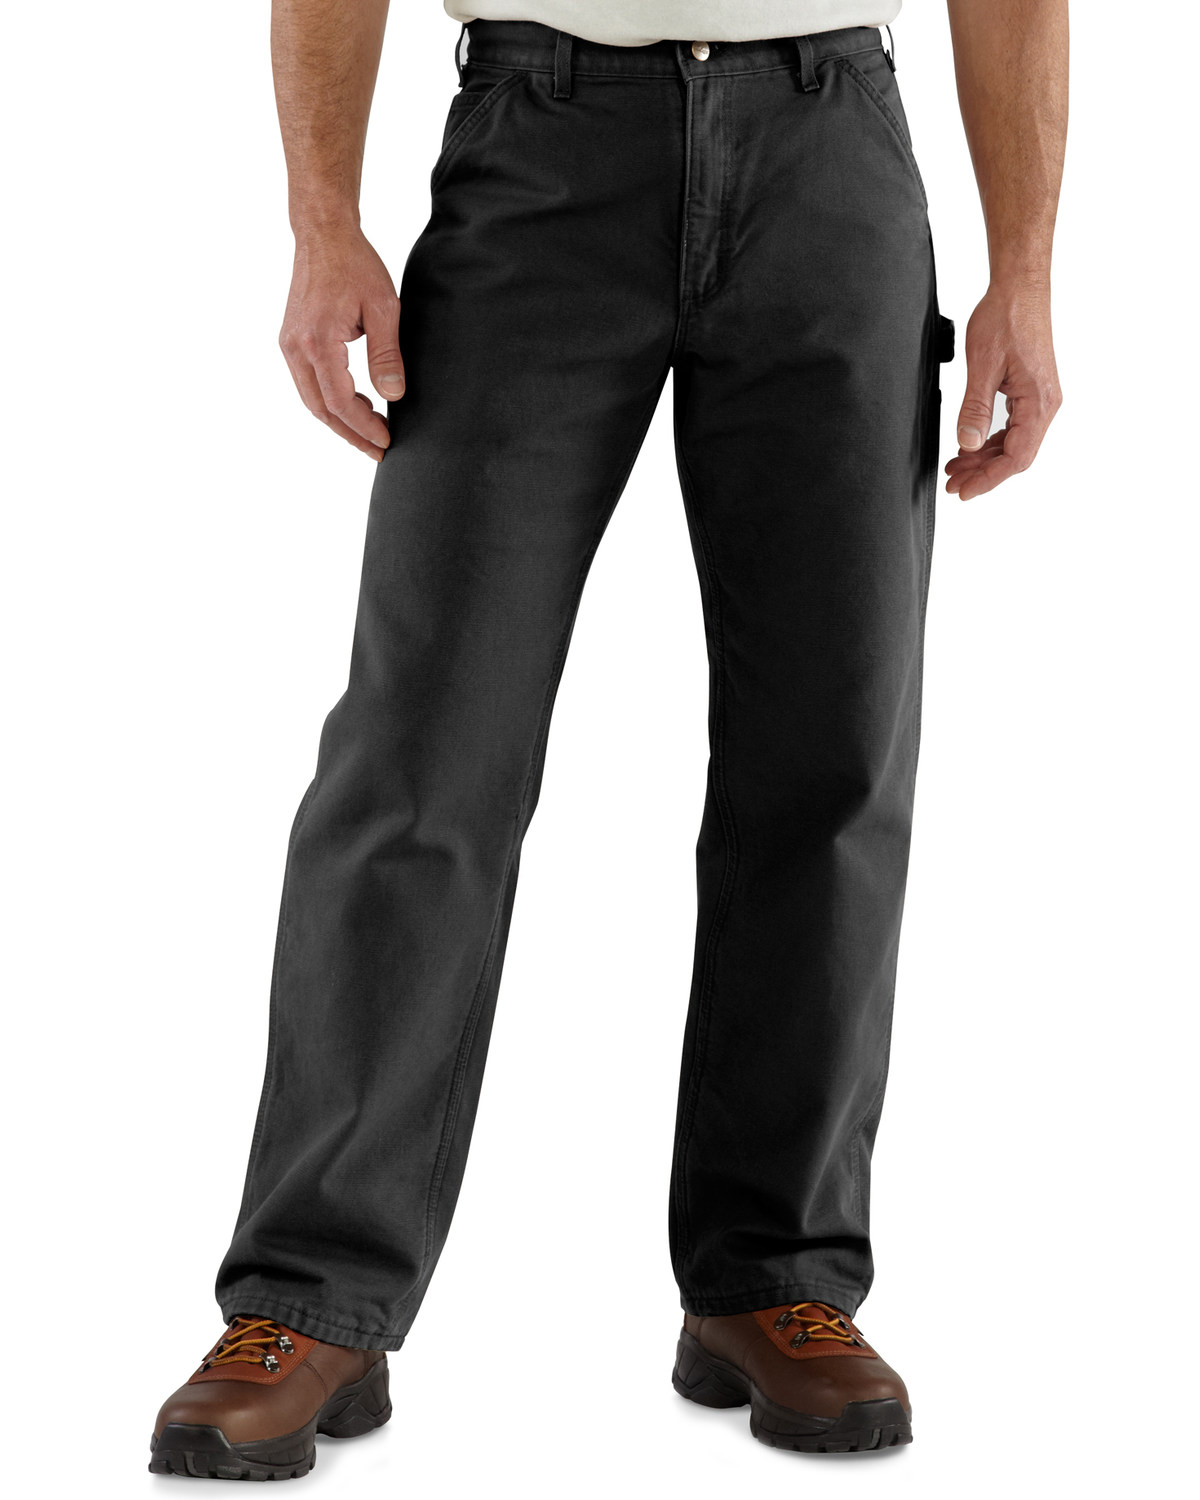 60dc98bbac Zoomed Image Carhartt Washed Duck Flannel Lined Dungaree Work Pants, Black,  hi-res